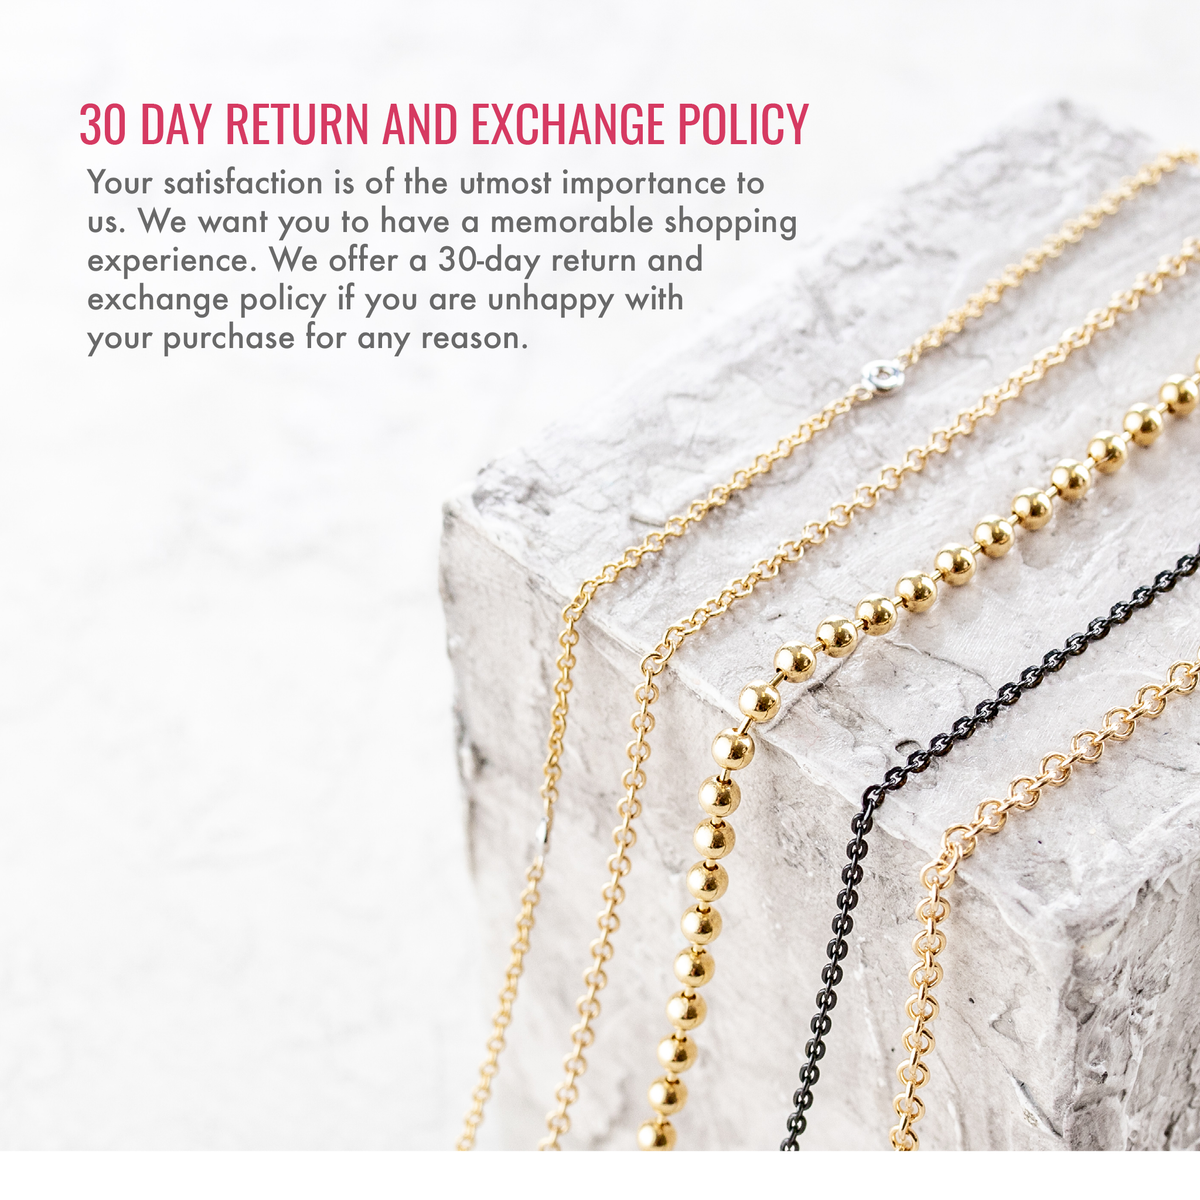 30 day return and exchange policy. Your satisfaction is of the utmost importance to us. We want you to have a memorable shopping experience. We offer a 30-day return and exchange policy if you are unhappy with your purchase for any reason.